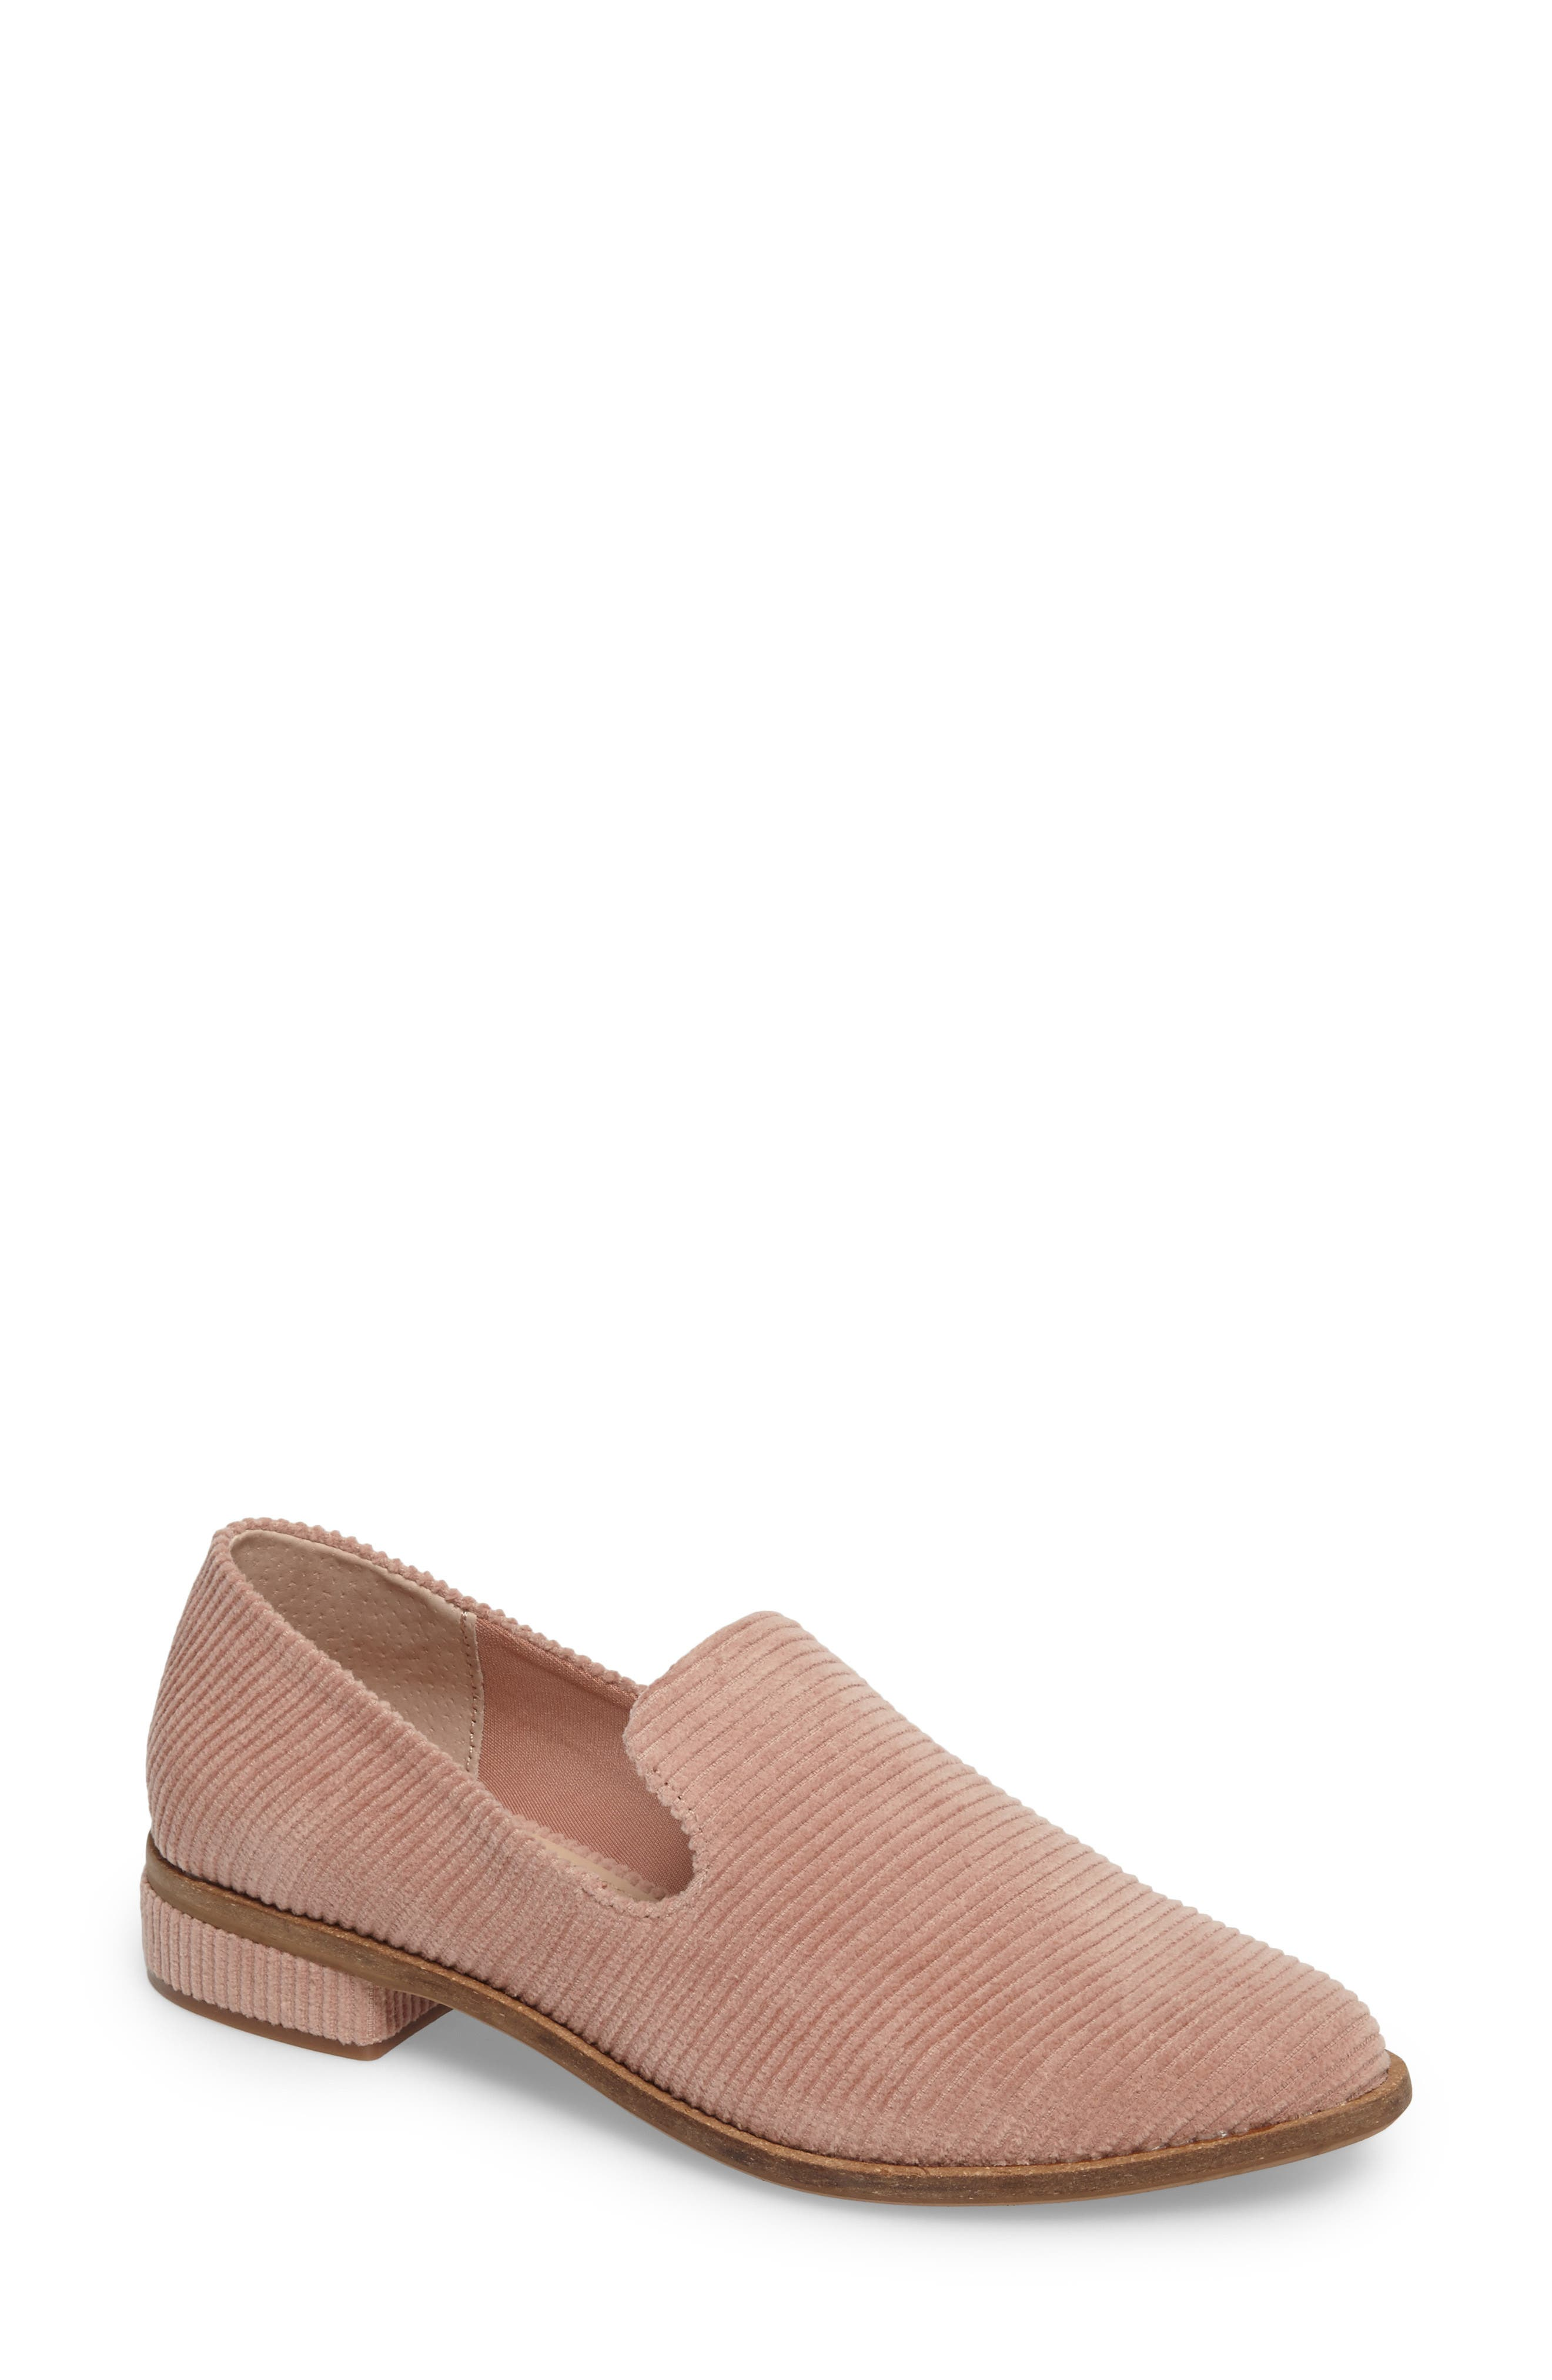 Arbor Corduroy Loafer,                             Main thumbnail 2, color,